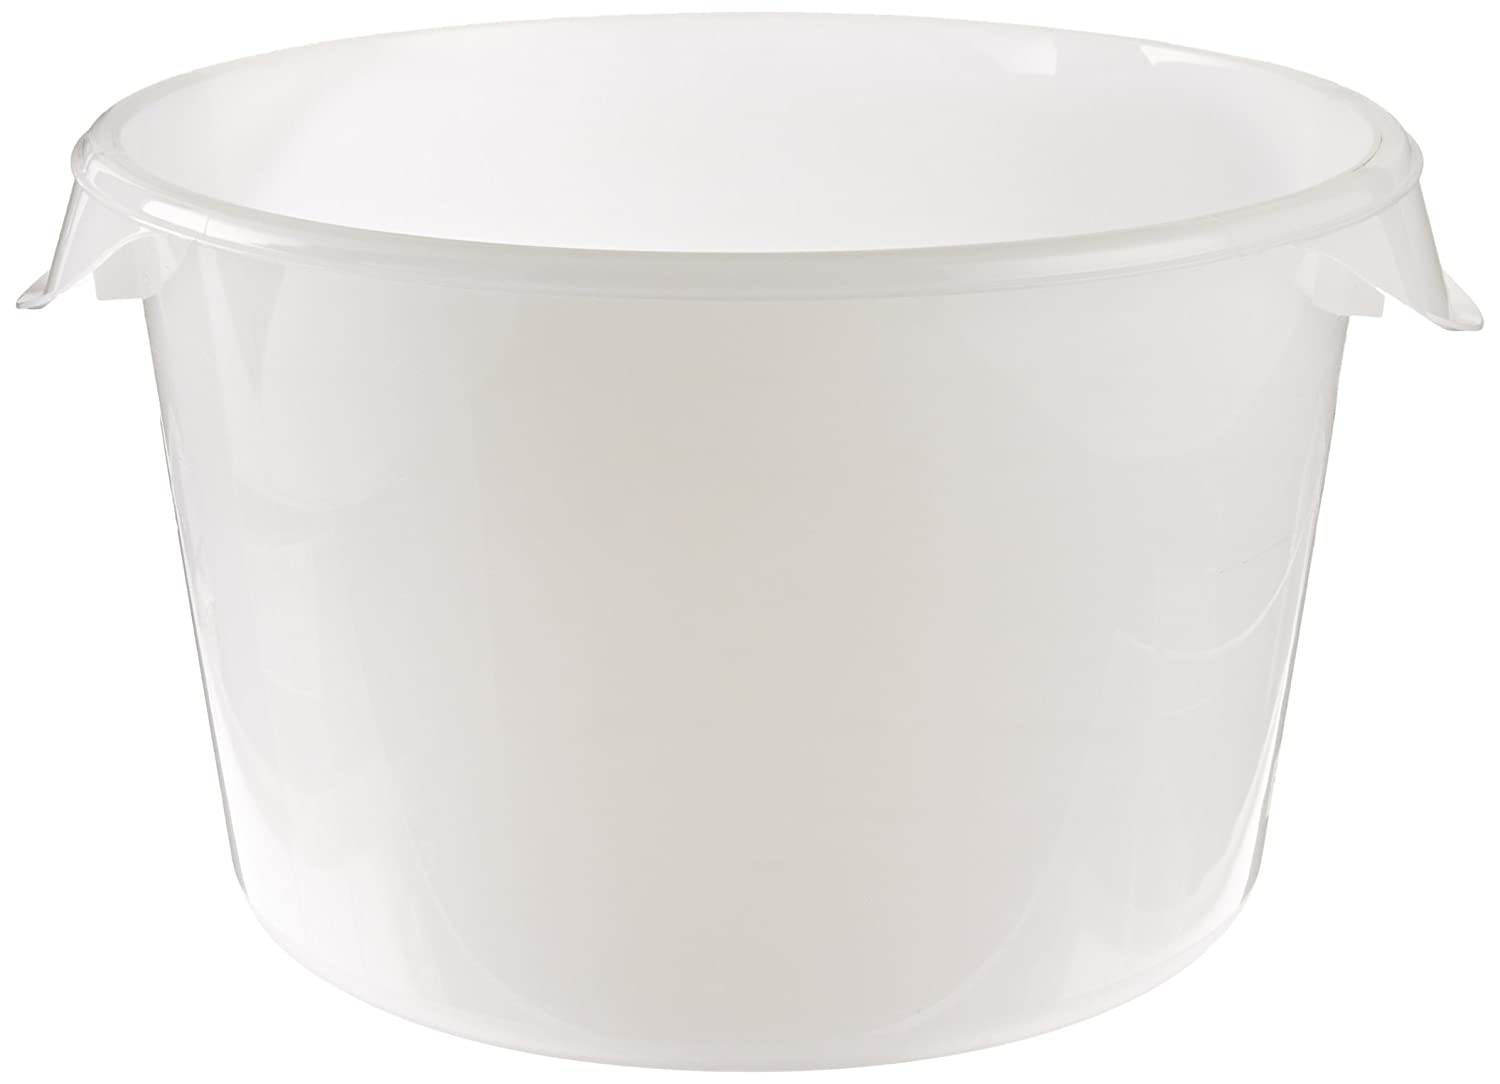 Rubbermaid Commercial Products Plastic Round Food Storage Container for Kitchen/Food Prep/Storing, 12 Quart, White (FG572600WHT)